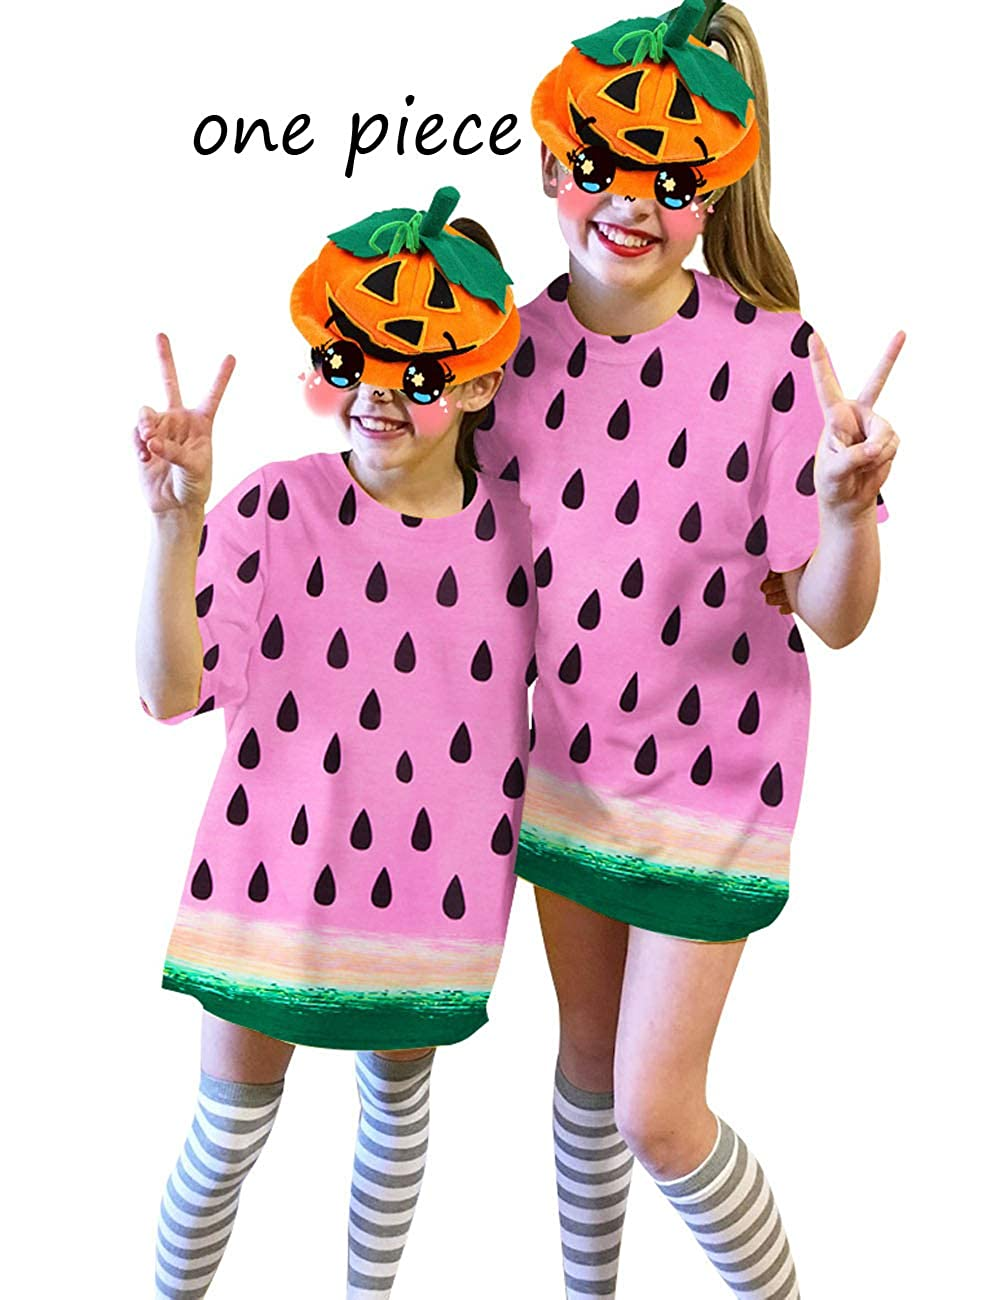 UNIFACO Kids Girls Halloween Costume T-Shirt Dresses Festival Party Fruit Cosplay Tshirt Dress CQJFJ001